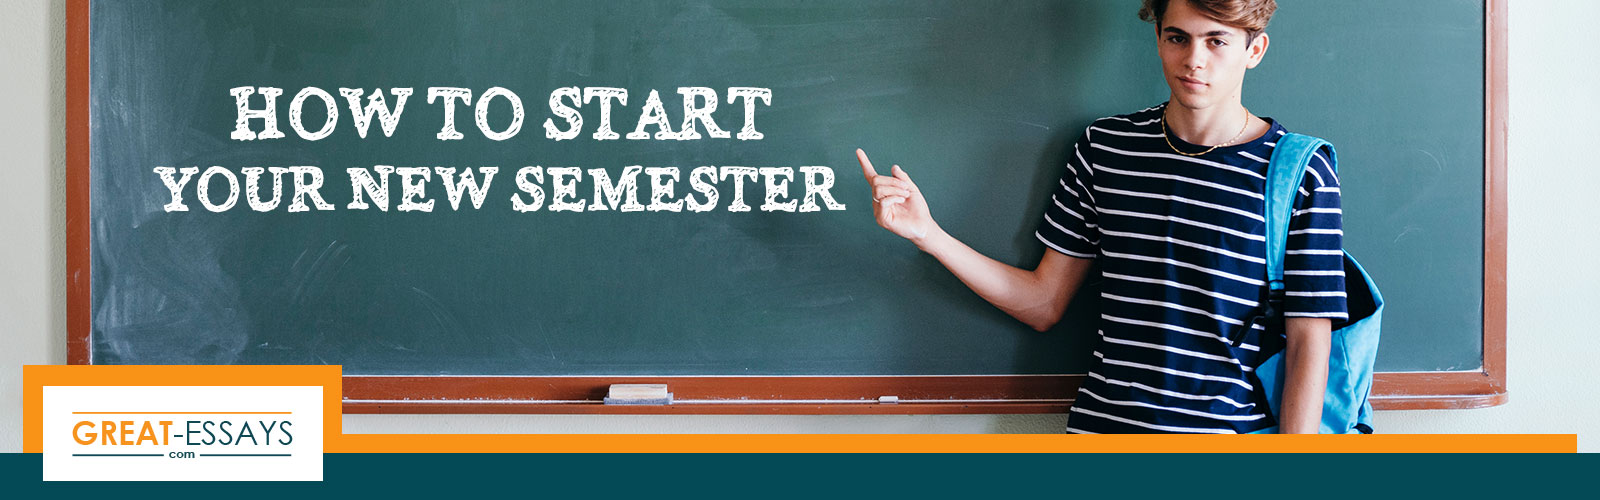 How-to-Start-a-New-Semester